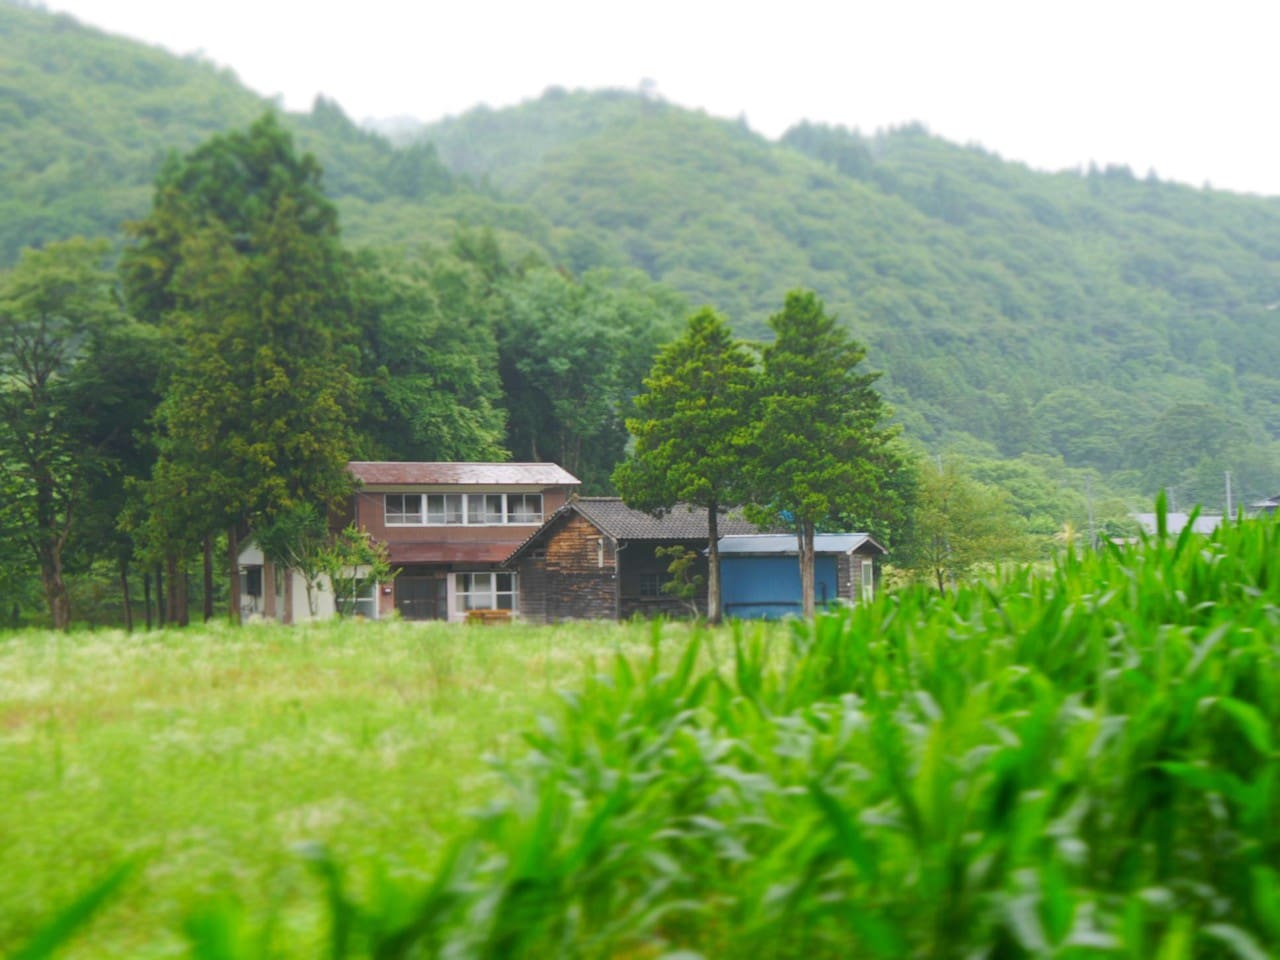 Japanese style old farm house surrounded by fields and small river  in a hilly area 畑、小川に囲まれた農家です。